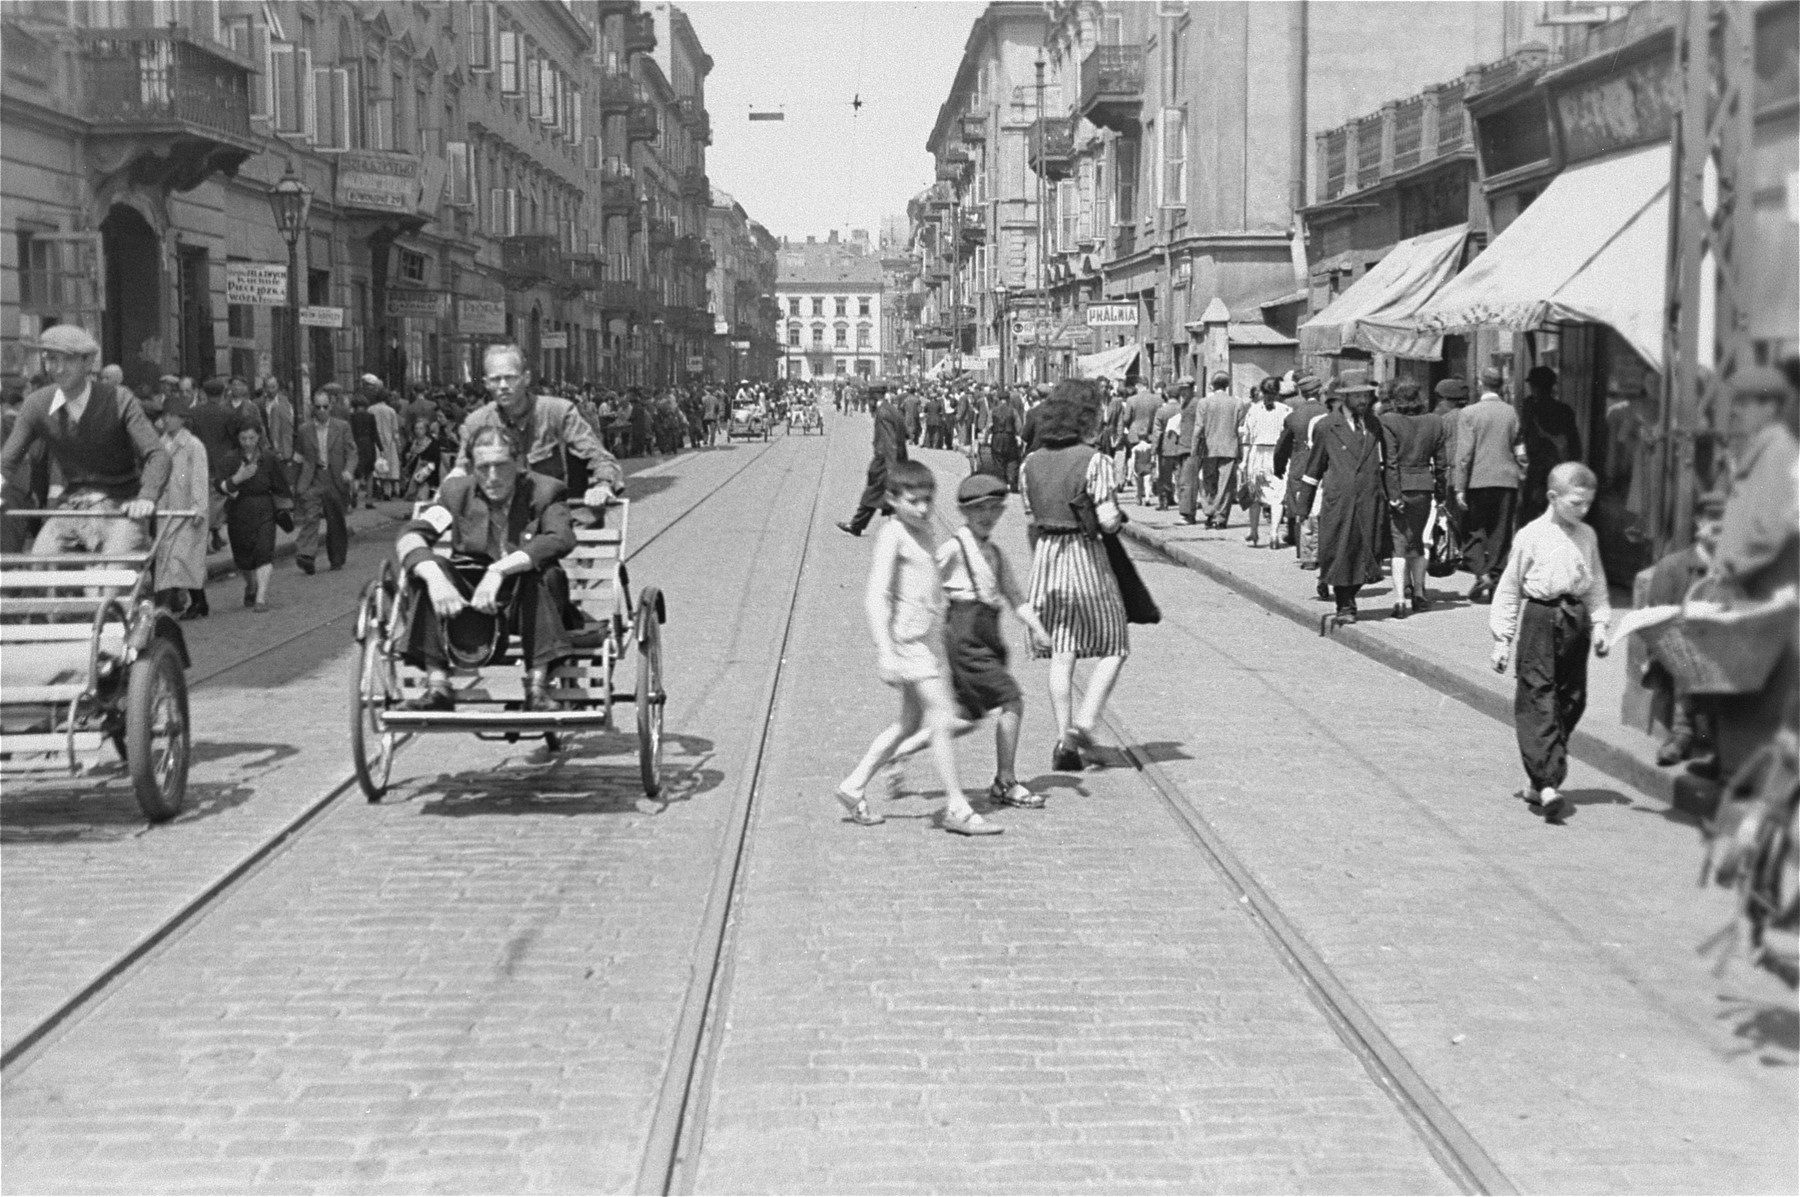 A Jewish man rides in a rickshaw on a crowded street in the Warsaw ghetto.